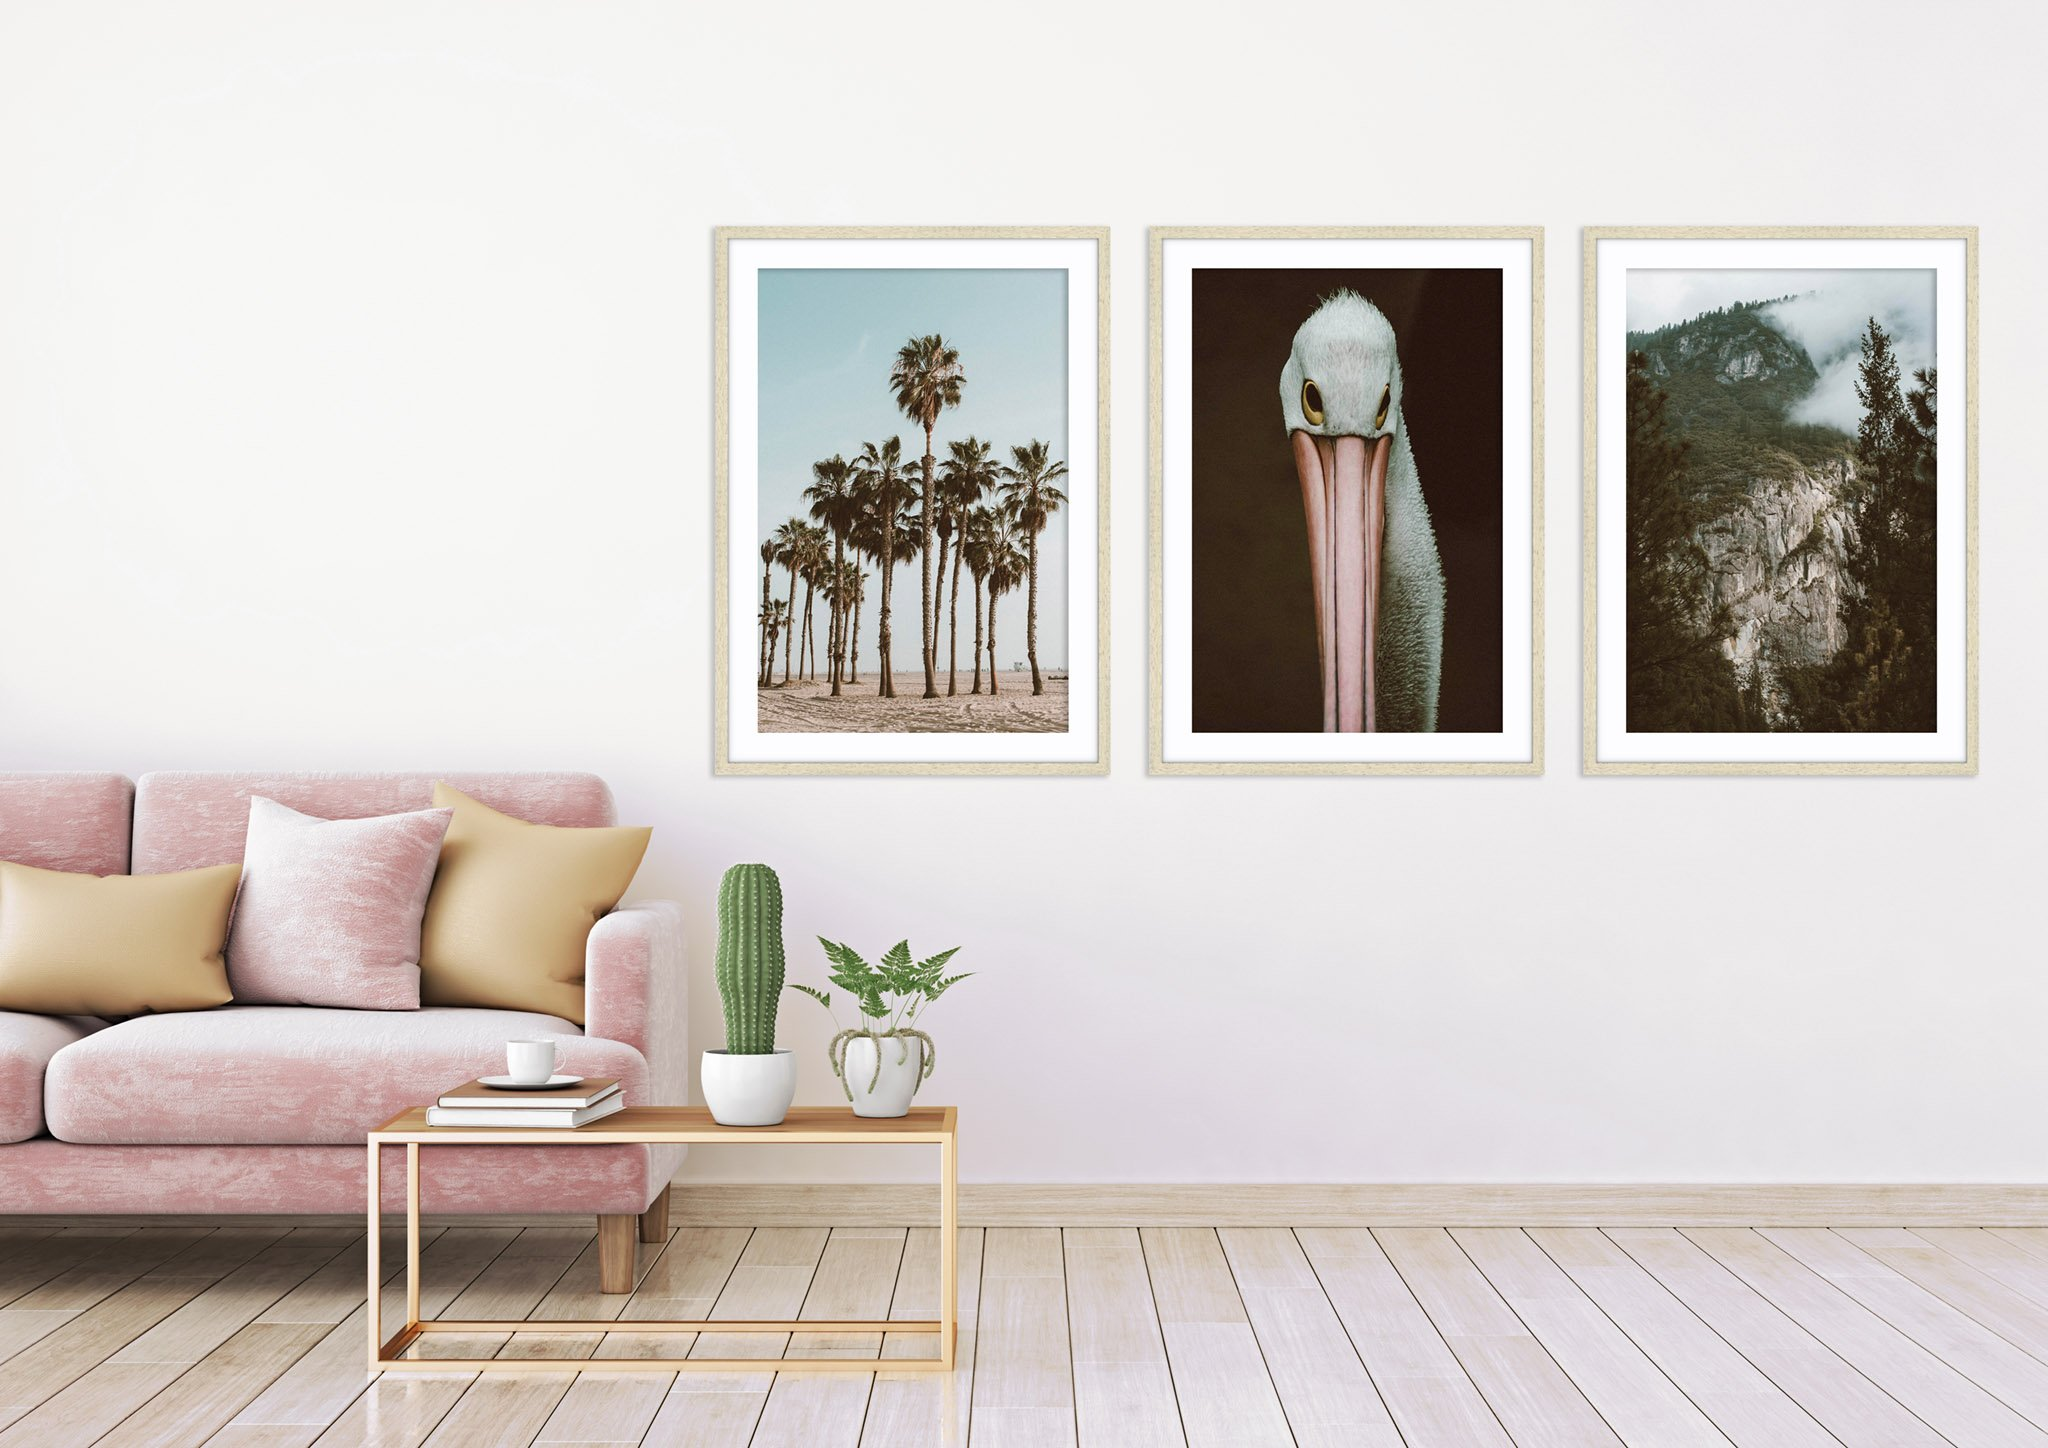 Photographic Prints Decorating Your Home Interiors Wall Art